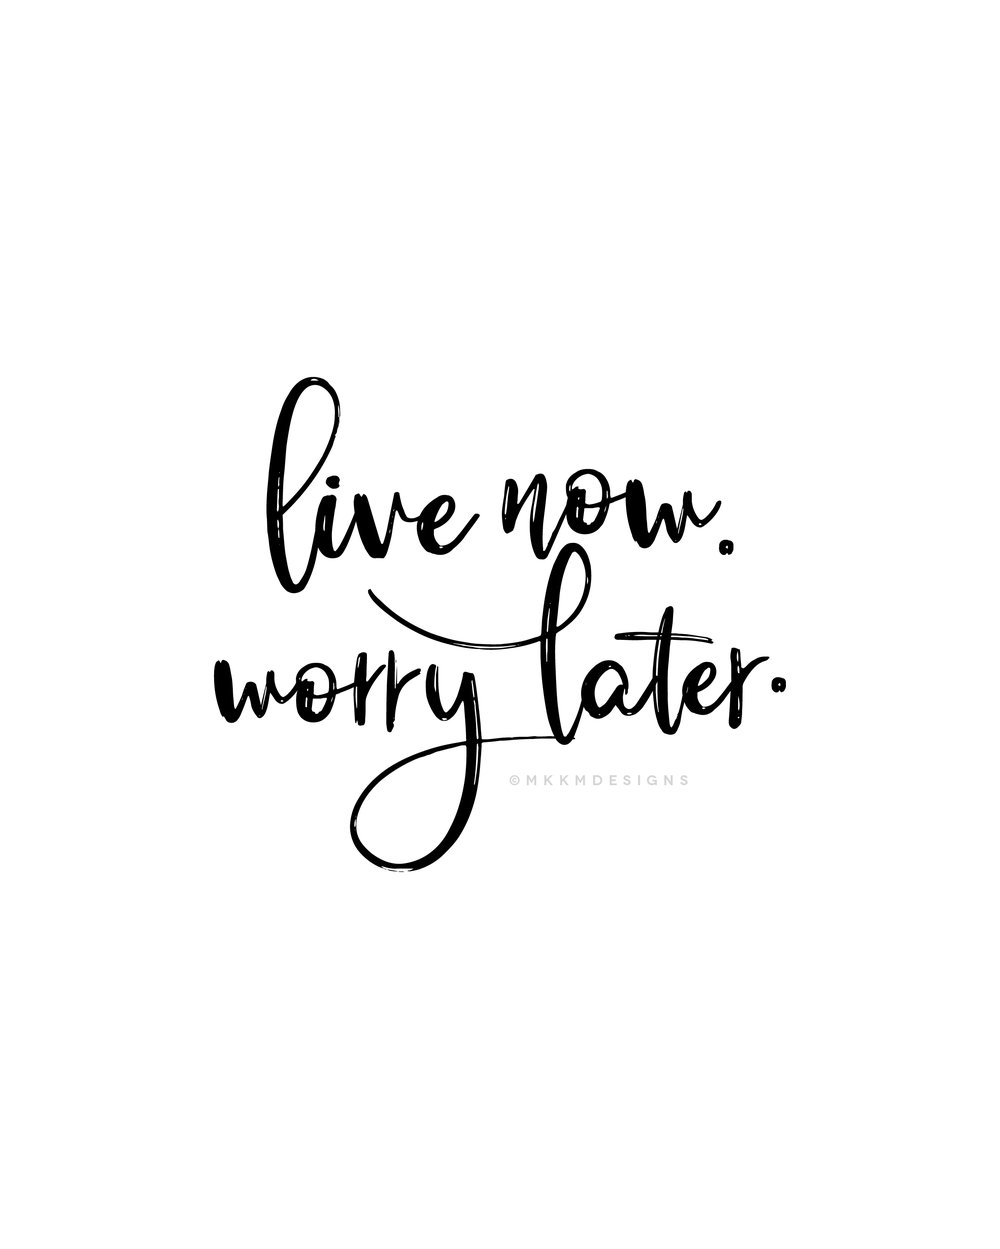 Live now, worry later. ✦ Quote of the day ✦ Monday motivation, New Years Motivation  // ✦ mkkmdesigns